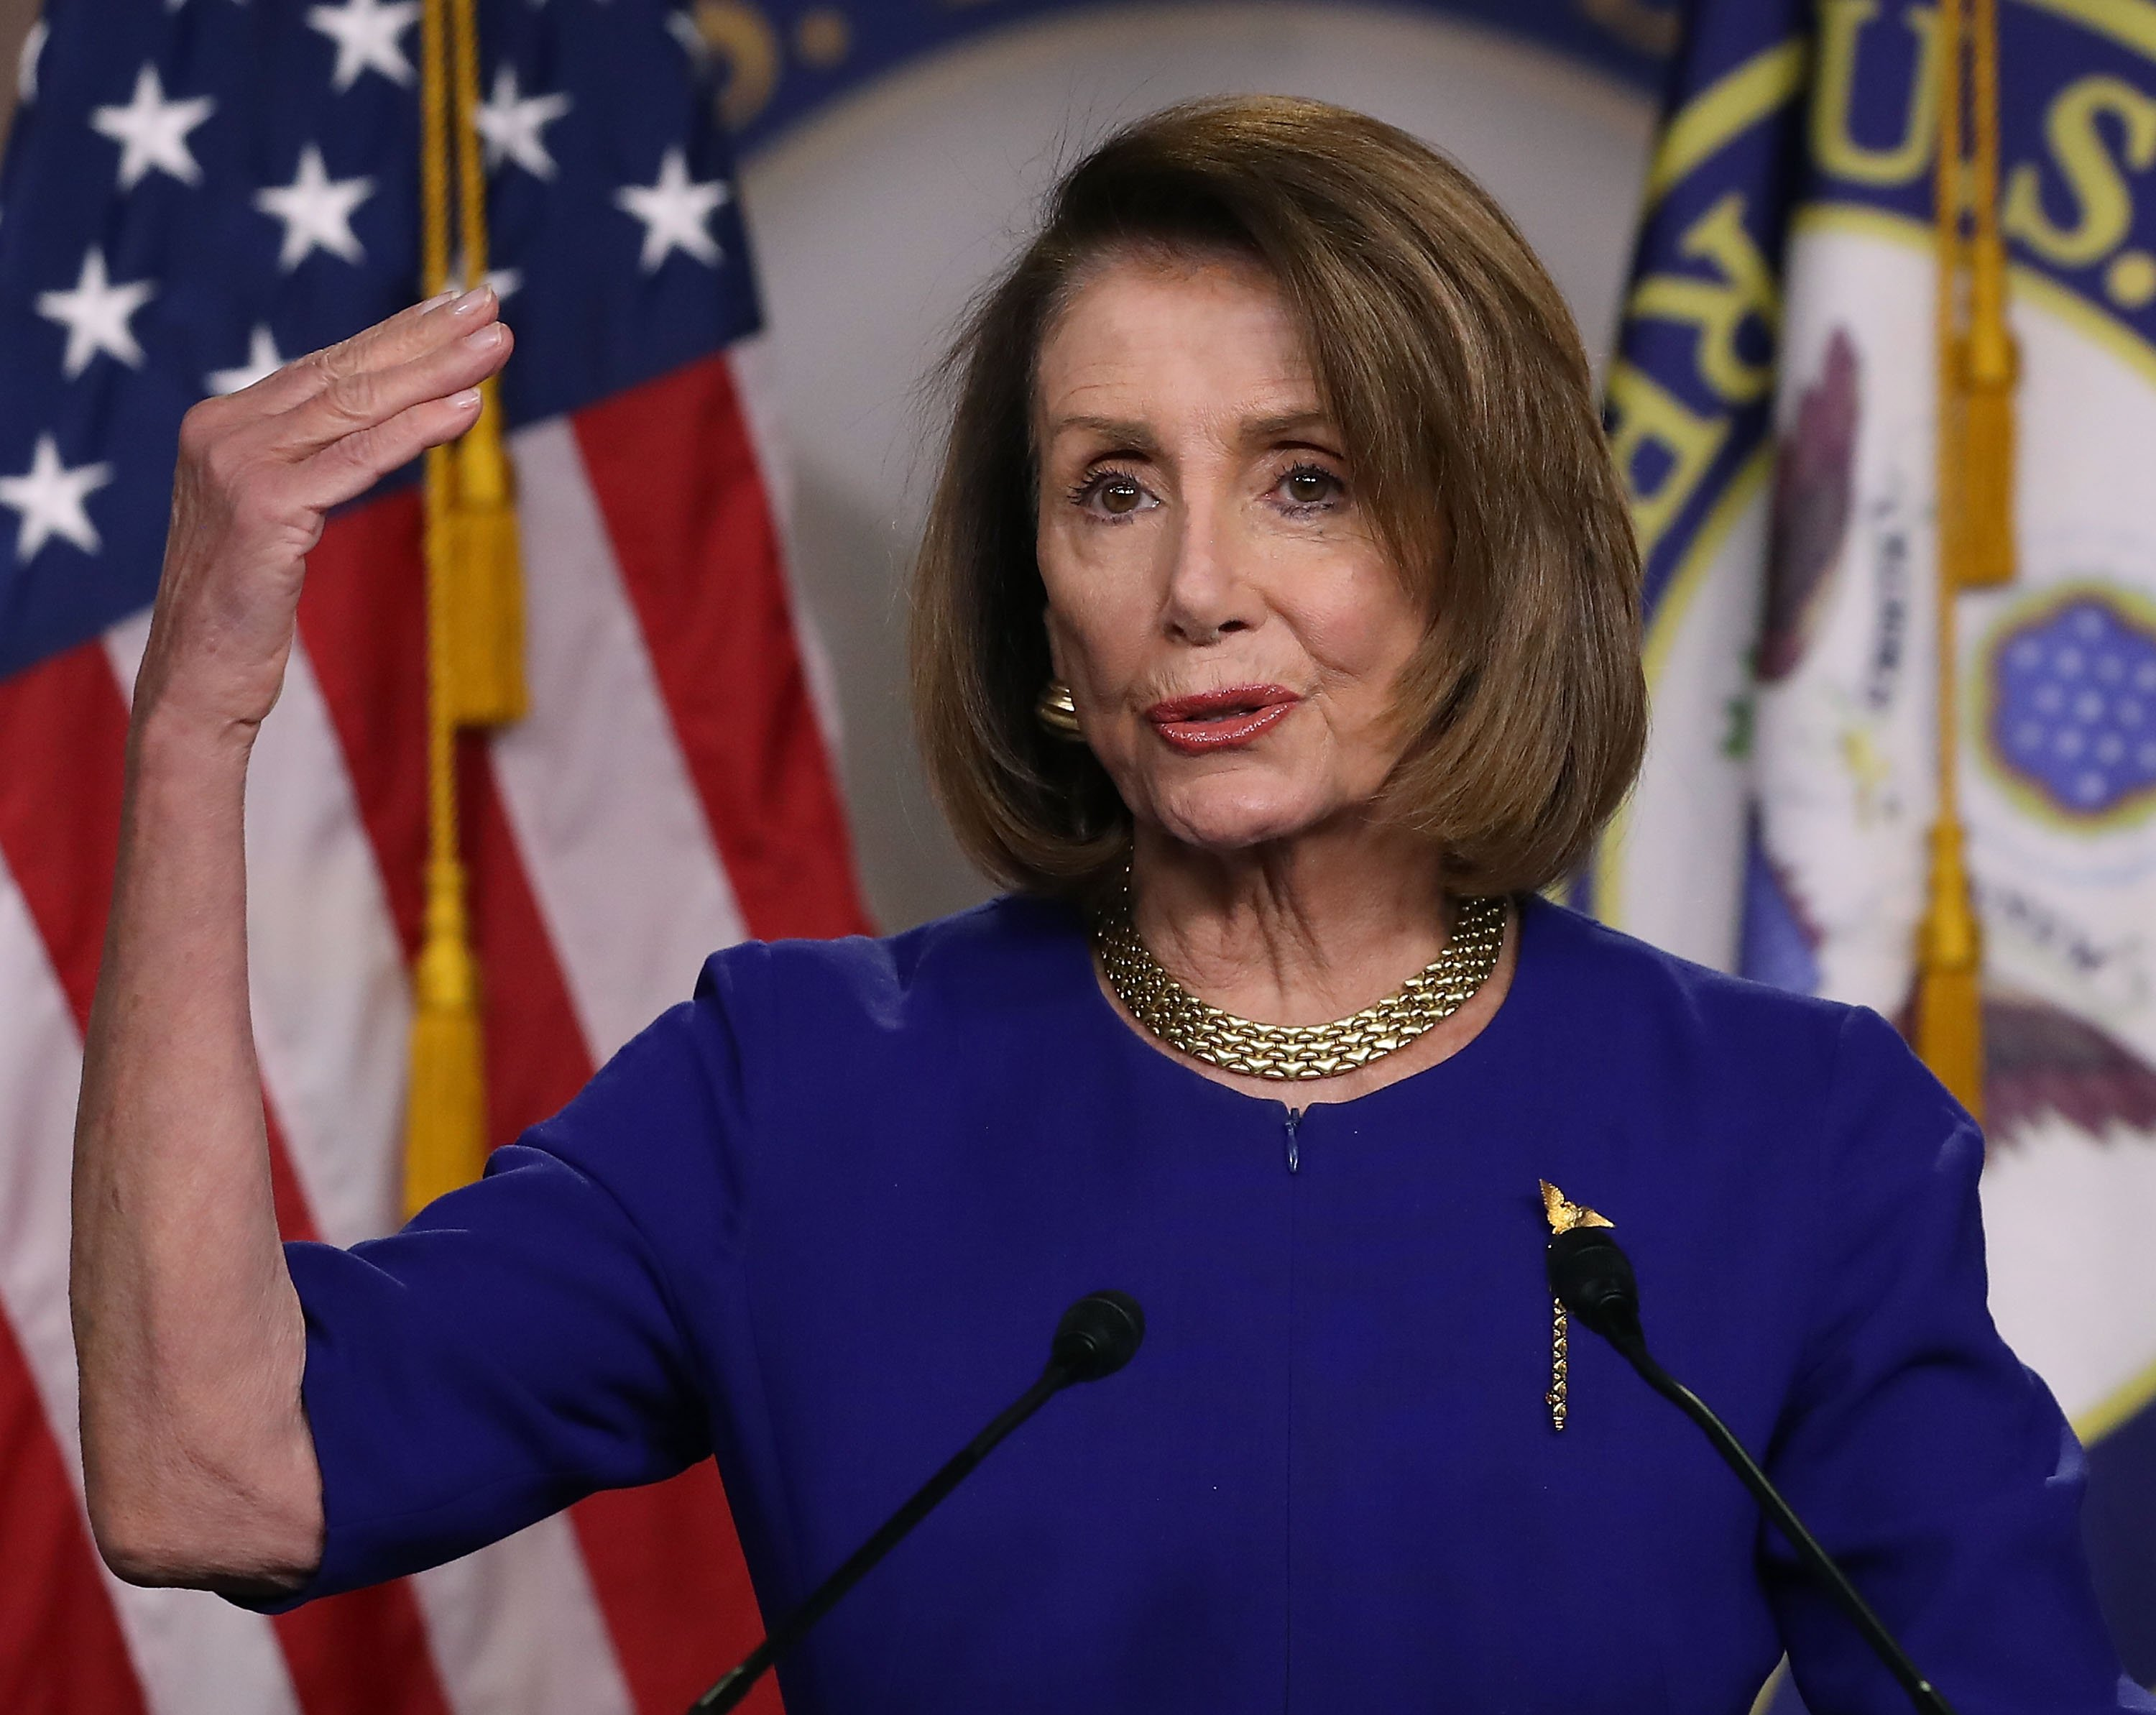 Nancy Pelosi giving a Press Conference | Photo: Getty Images